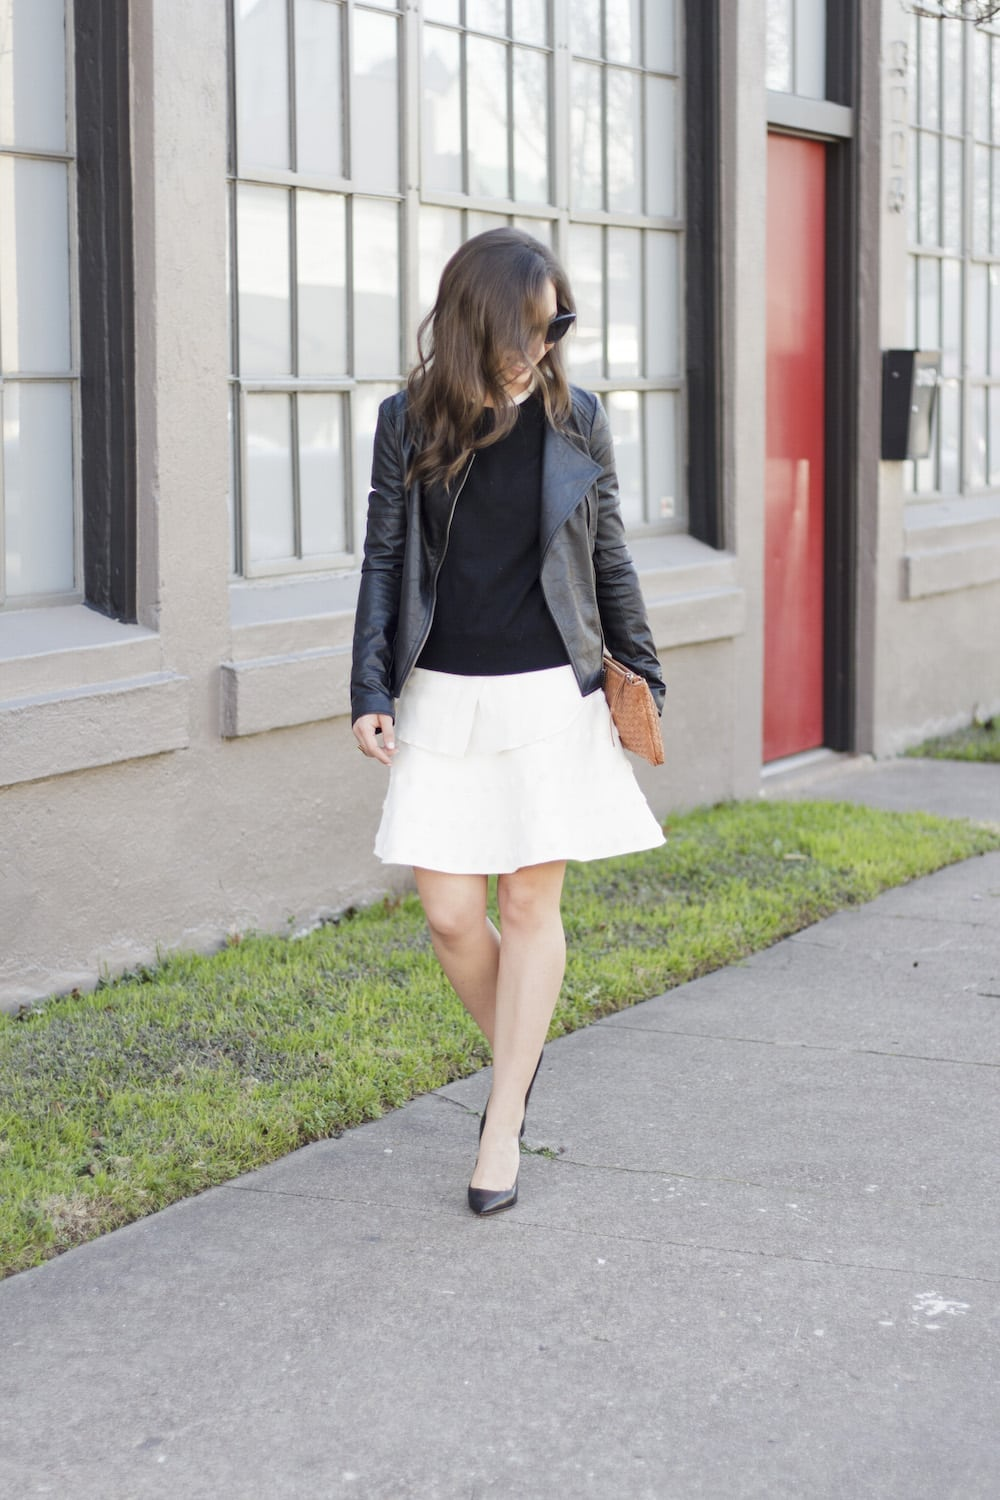 Leather Jacket and White Skirt_7